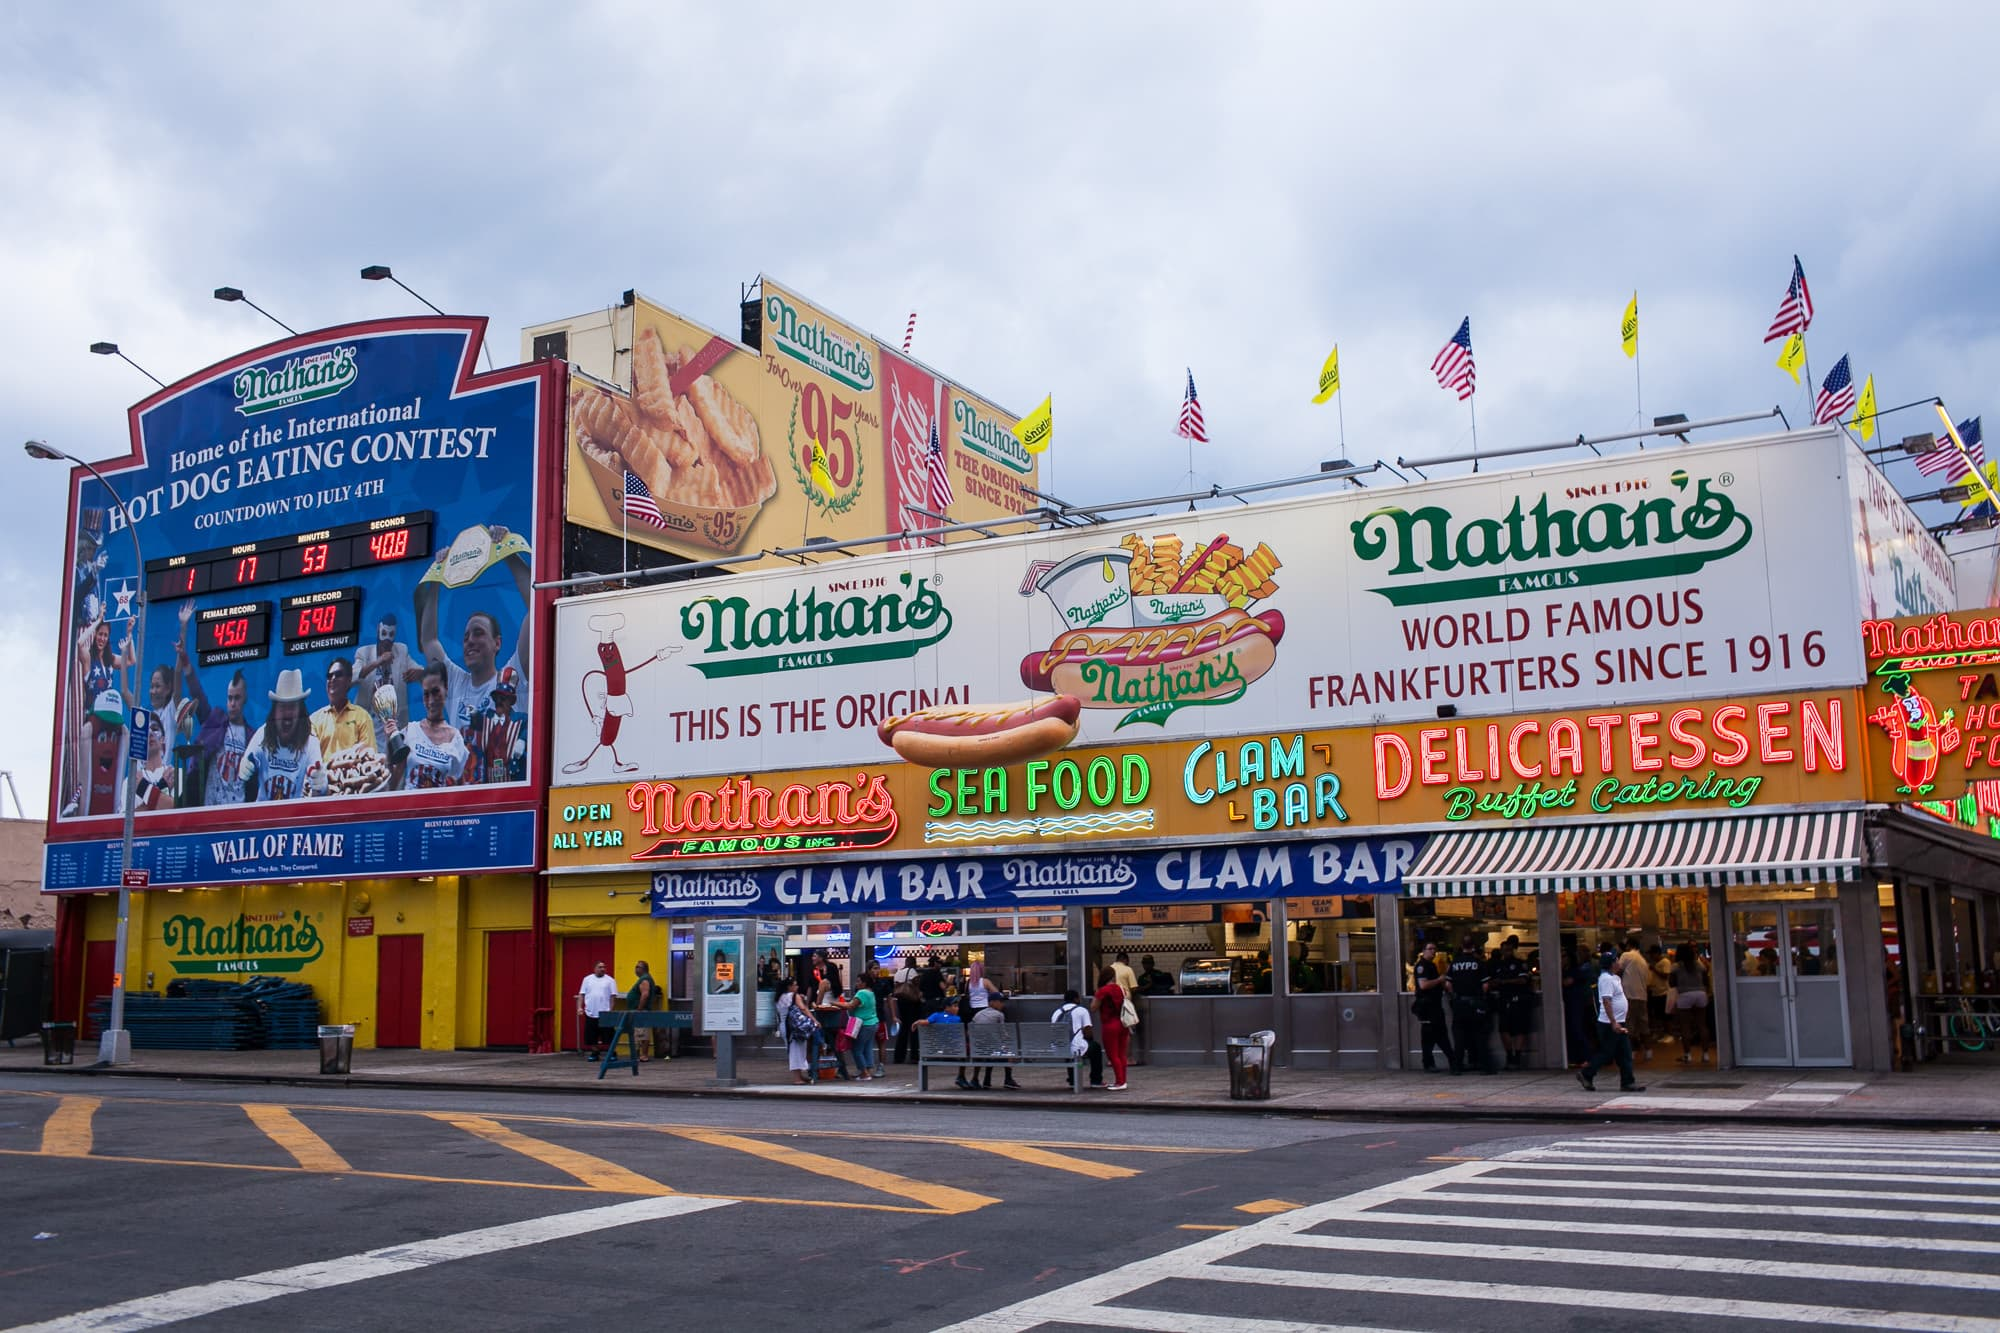 Nathan's Famous hot dog eating contest in Coney Island, New York.